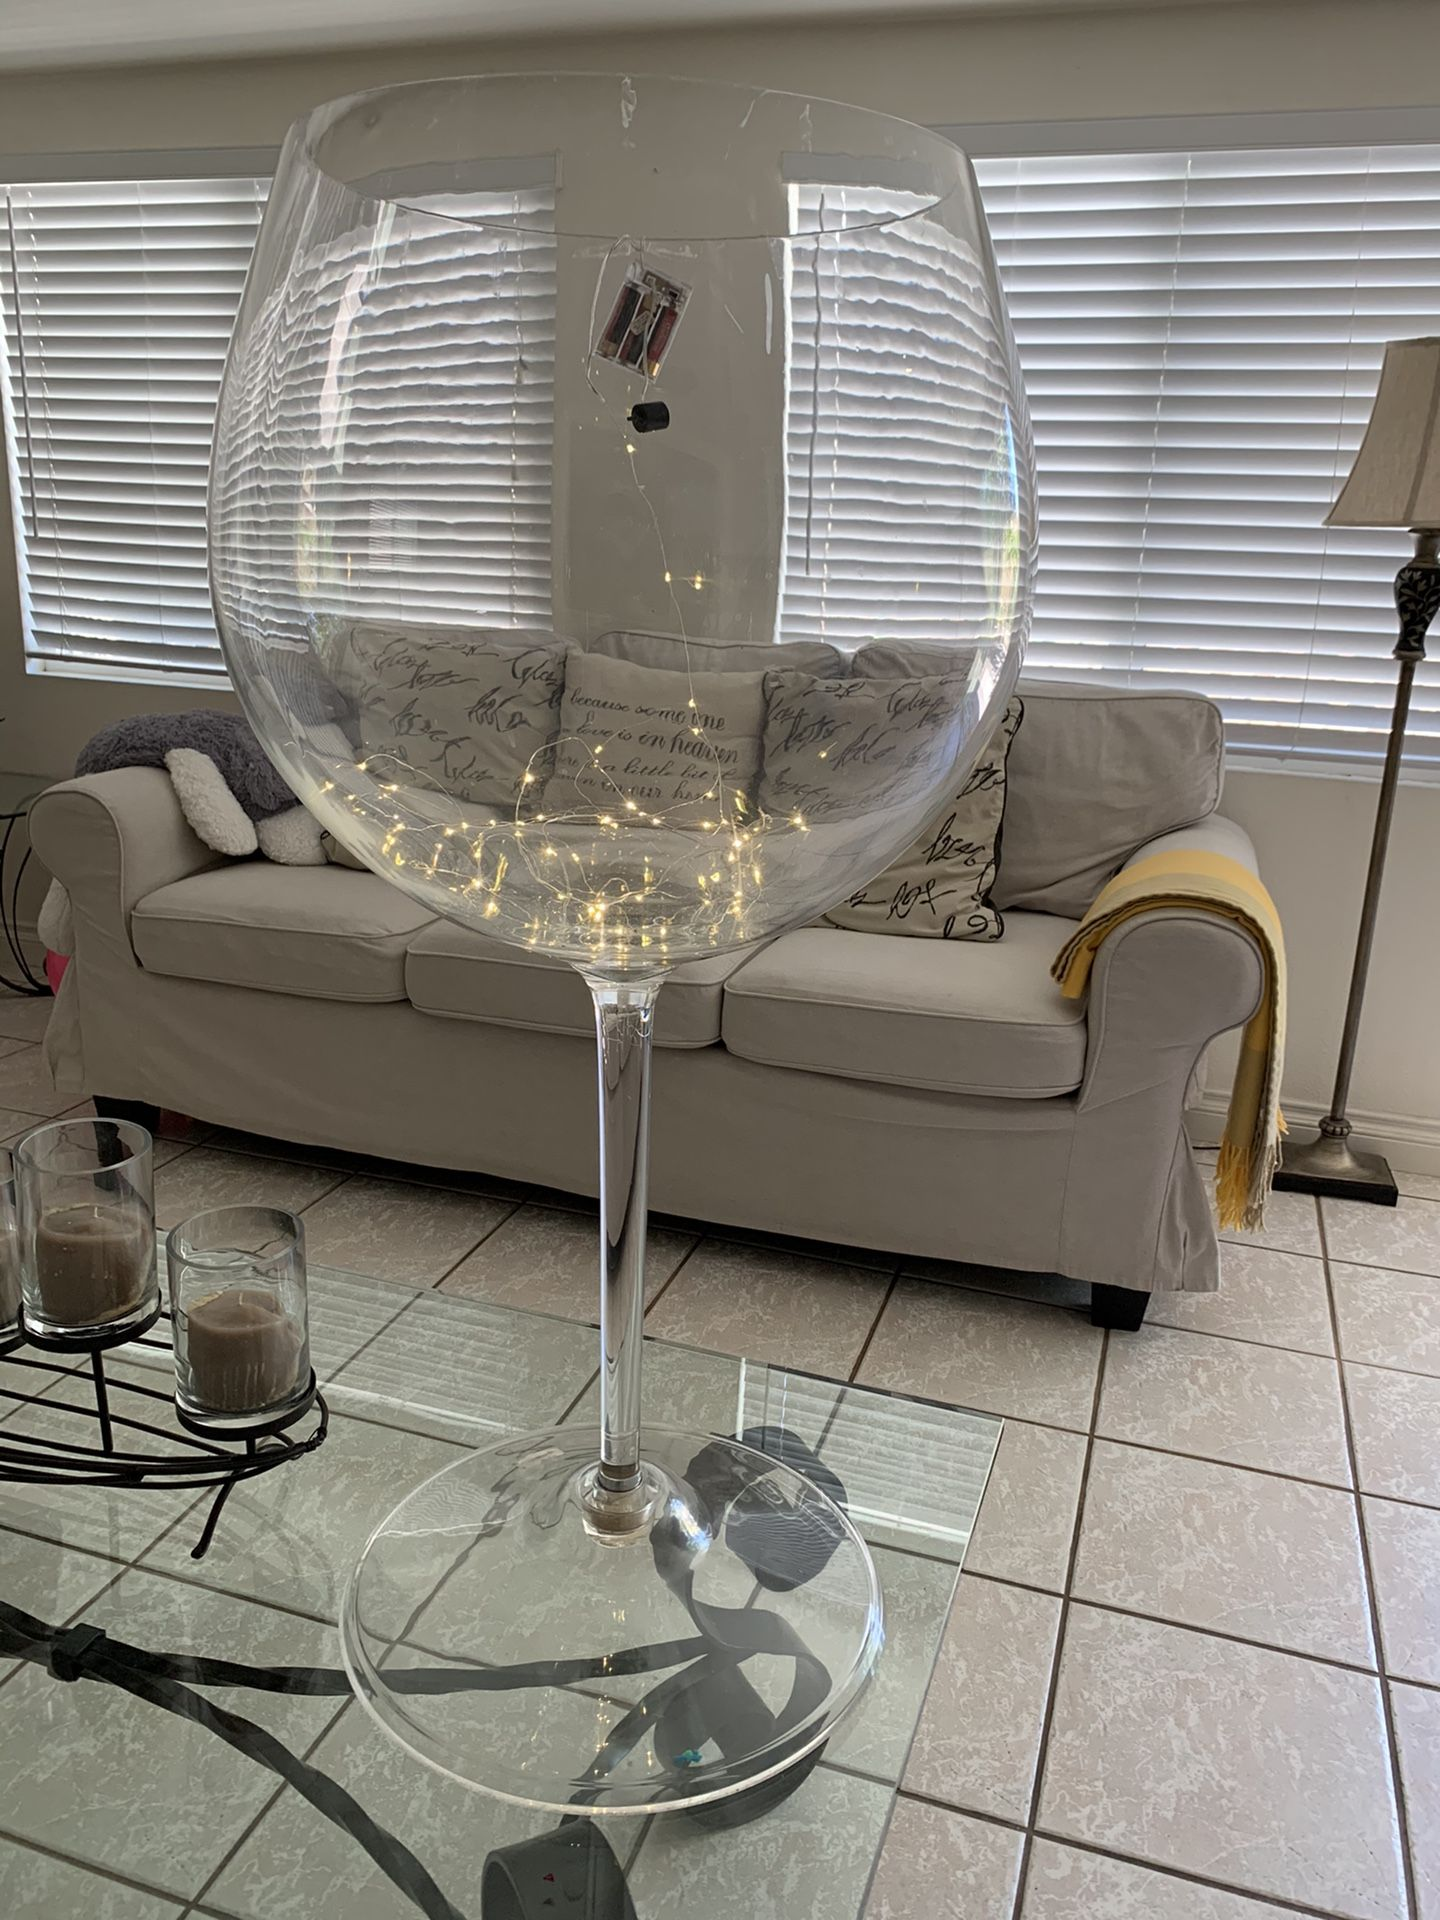 Big Red Wine Glass For Decoration & Chafing dishes